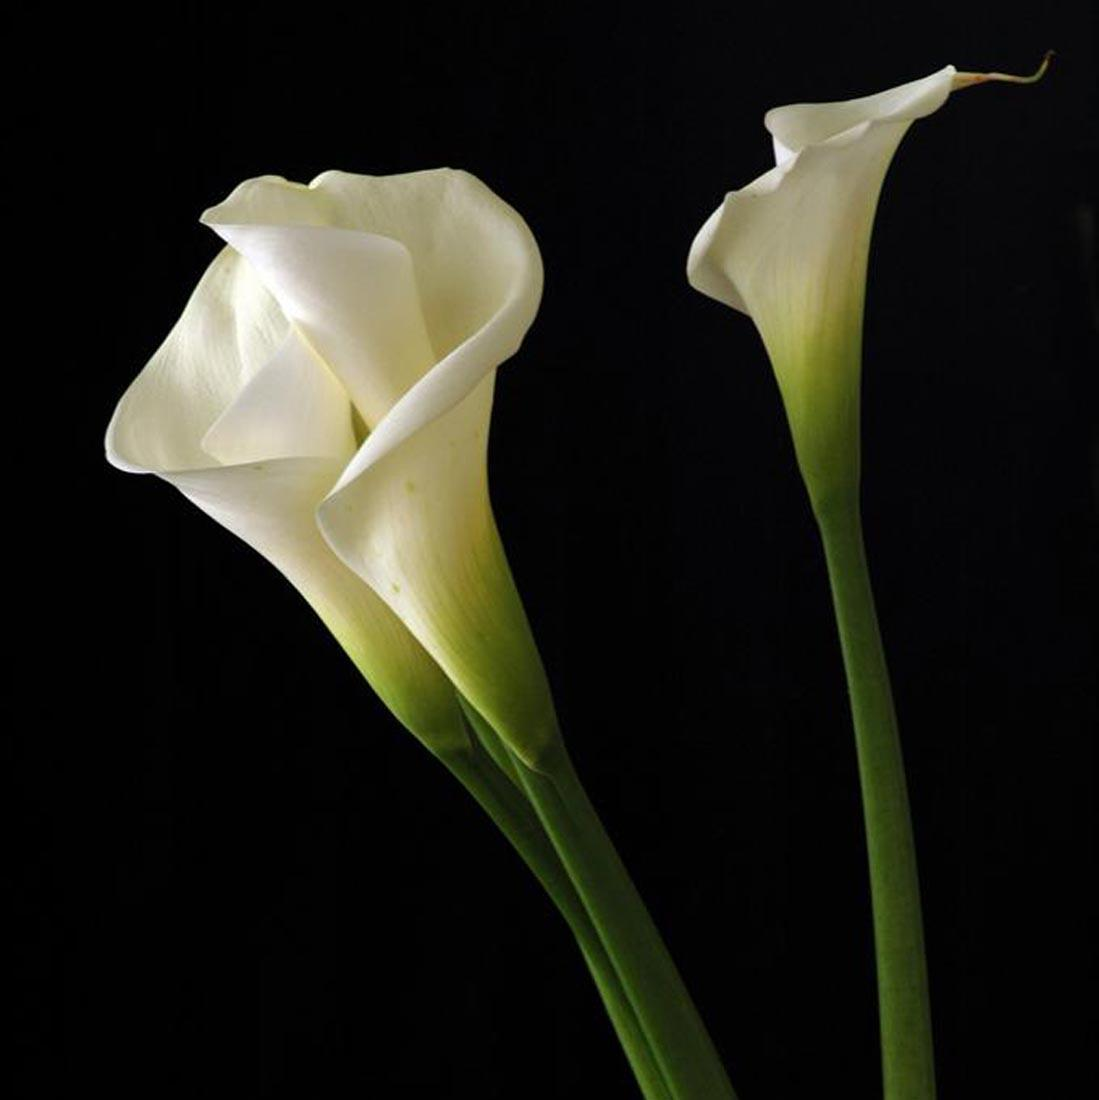 Imported calla lilies view specifications details of lily flower imported calla lilies izmirmasajfo Image collections